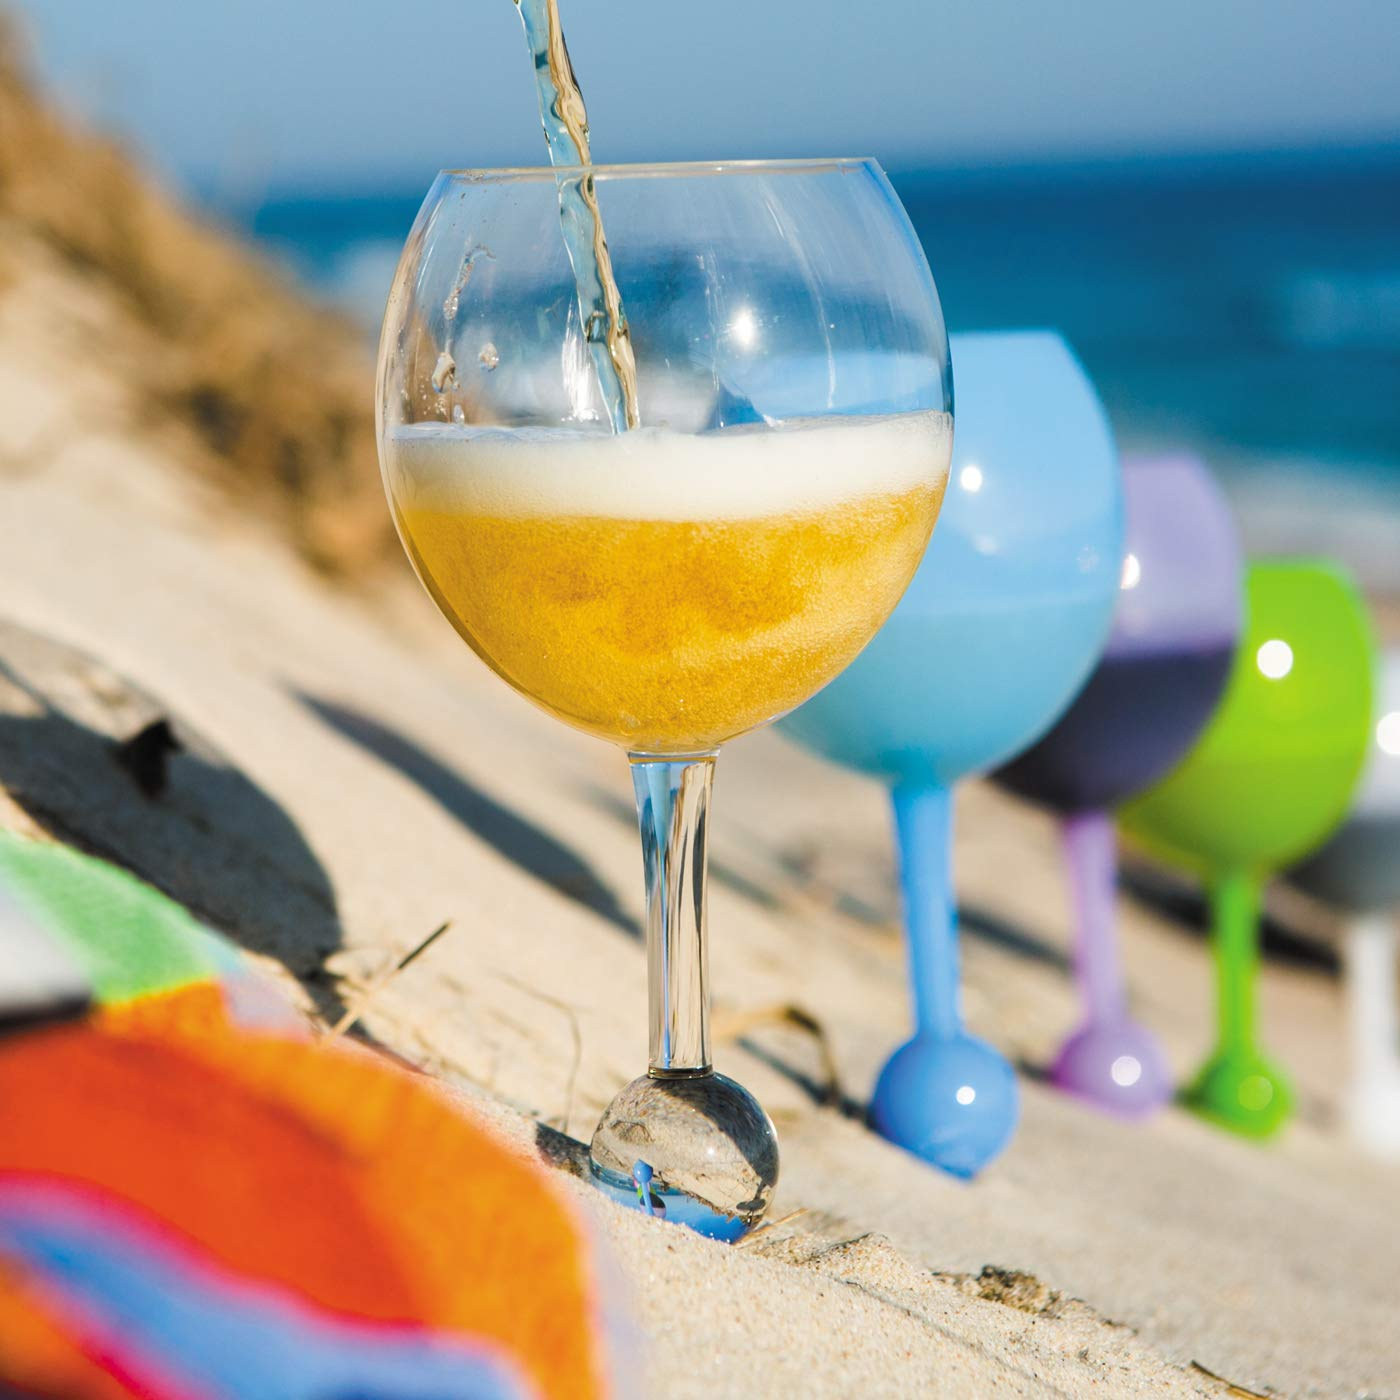 Original Floating Glass, Acrylic and Shatterproof Wine, Beer, Cocktail, Drinking Glasses for Pool, Beach, Camping and Outdoor Use